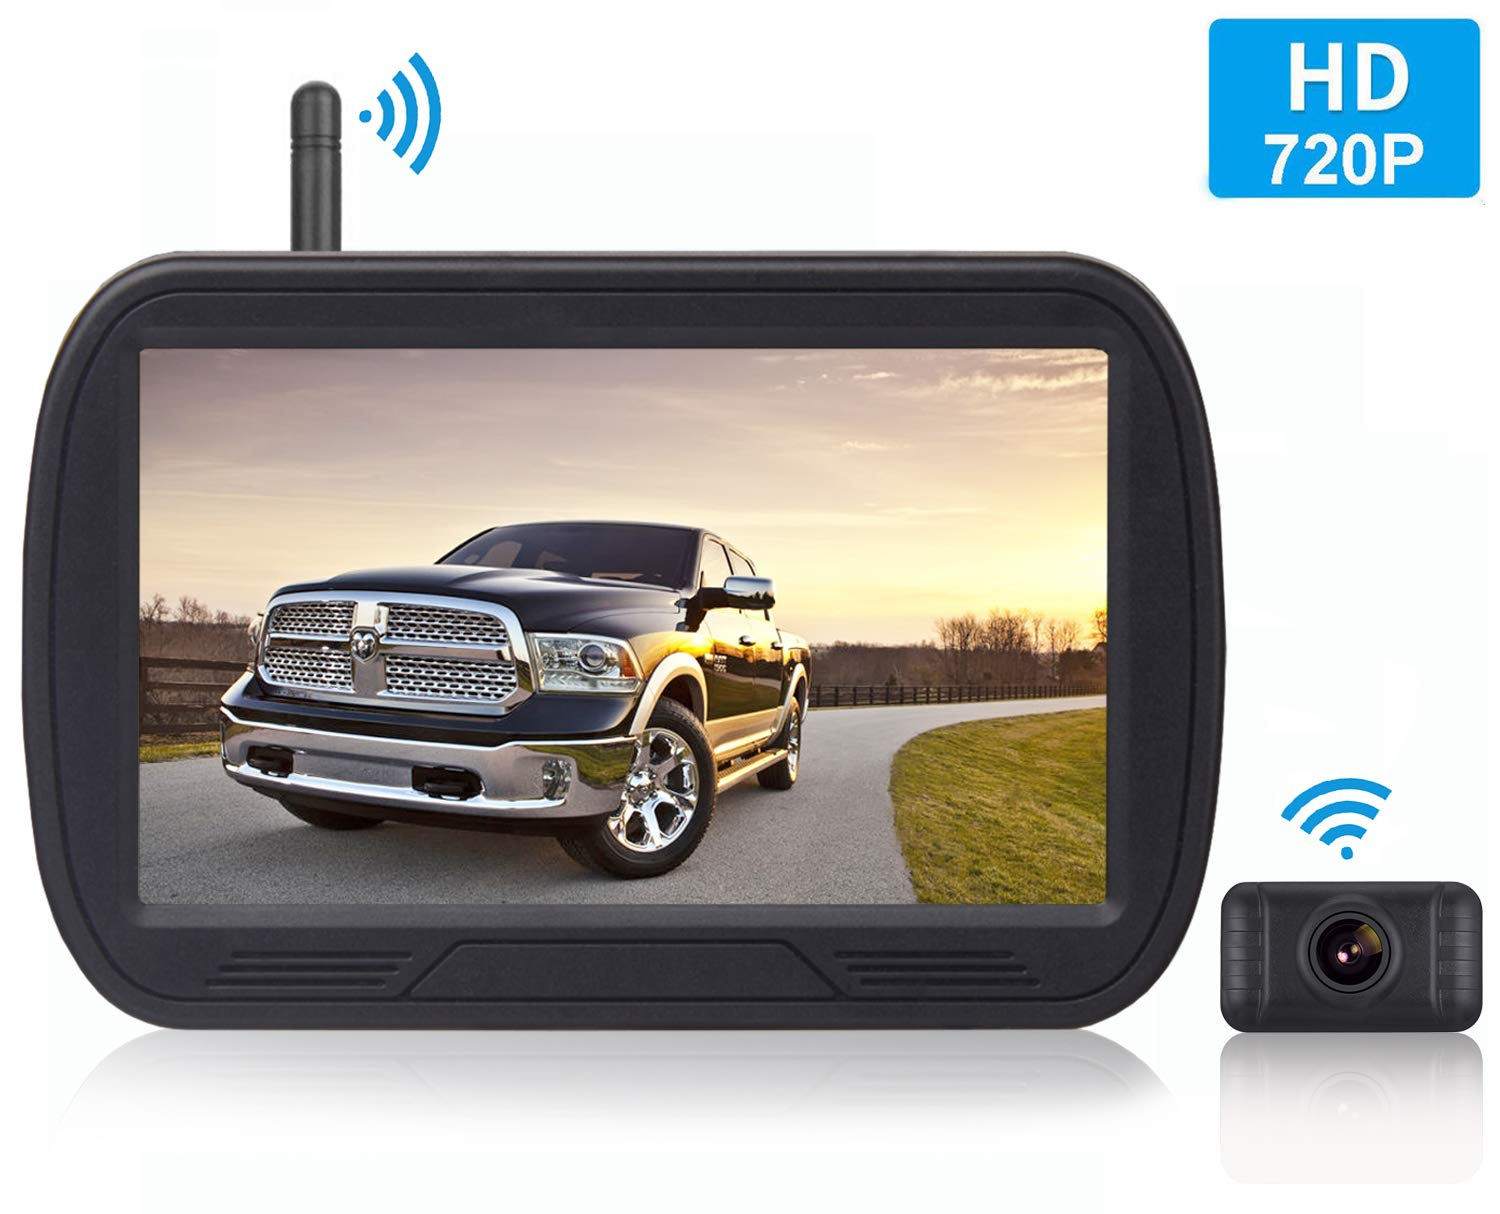 HD Digital Wireless Backup Camera System 5 Inch LCD Monitor for Trucks,Cars,SUVs,Pickups,Vans,Campers Front/Rear View Camera Super Night Vision Waterproof Easy Installation by DoHonest